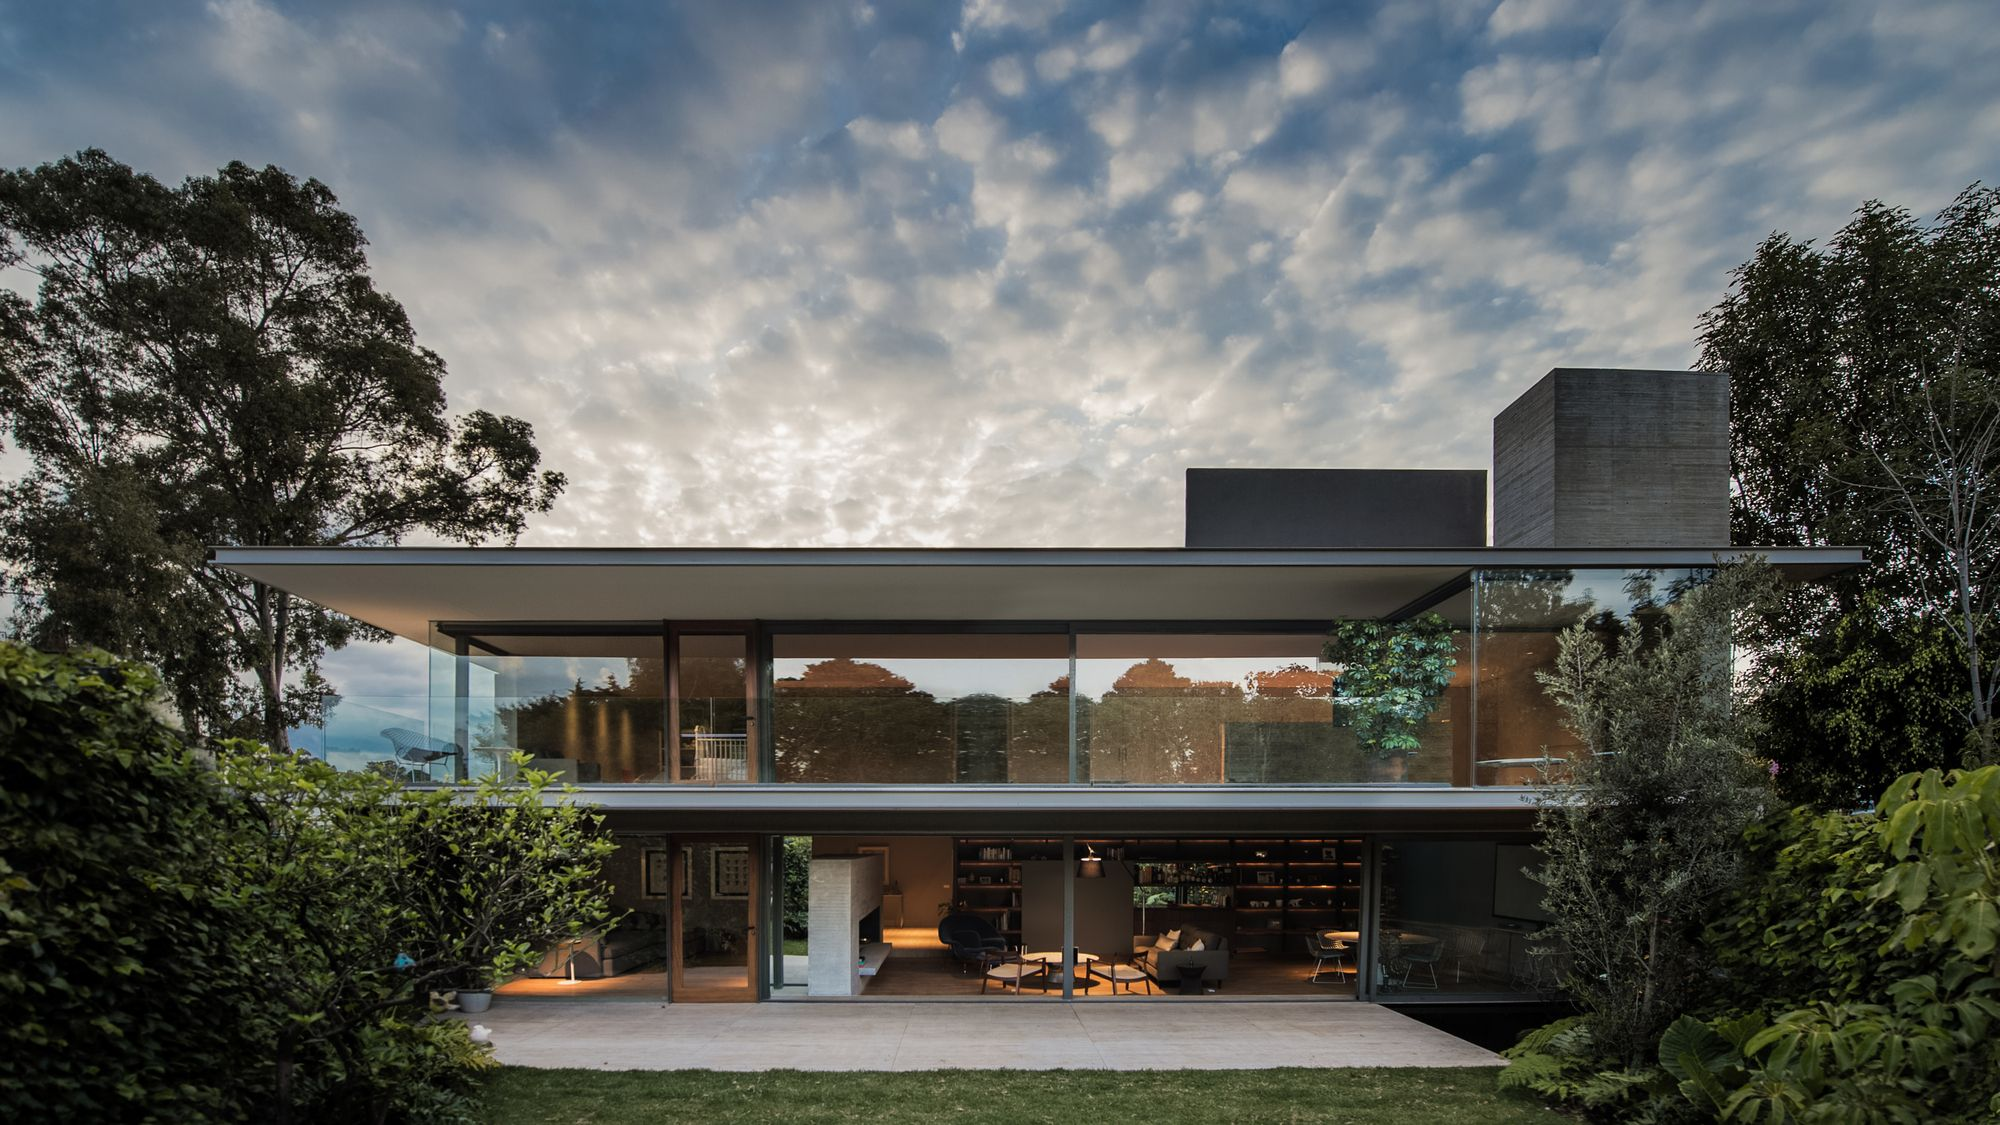 Completed In 2017 In Ciudad De Mexico Mexico Images By Fernando Marroquin The Ramos House Refers To The Flat Roof House Architecture Minimalist Architecture